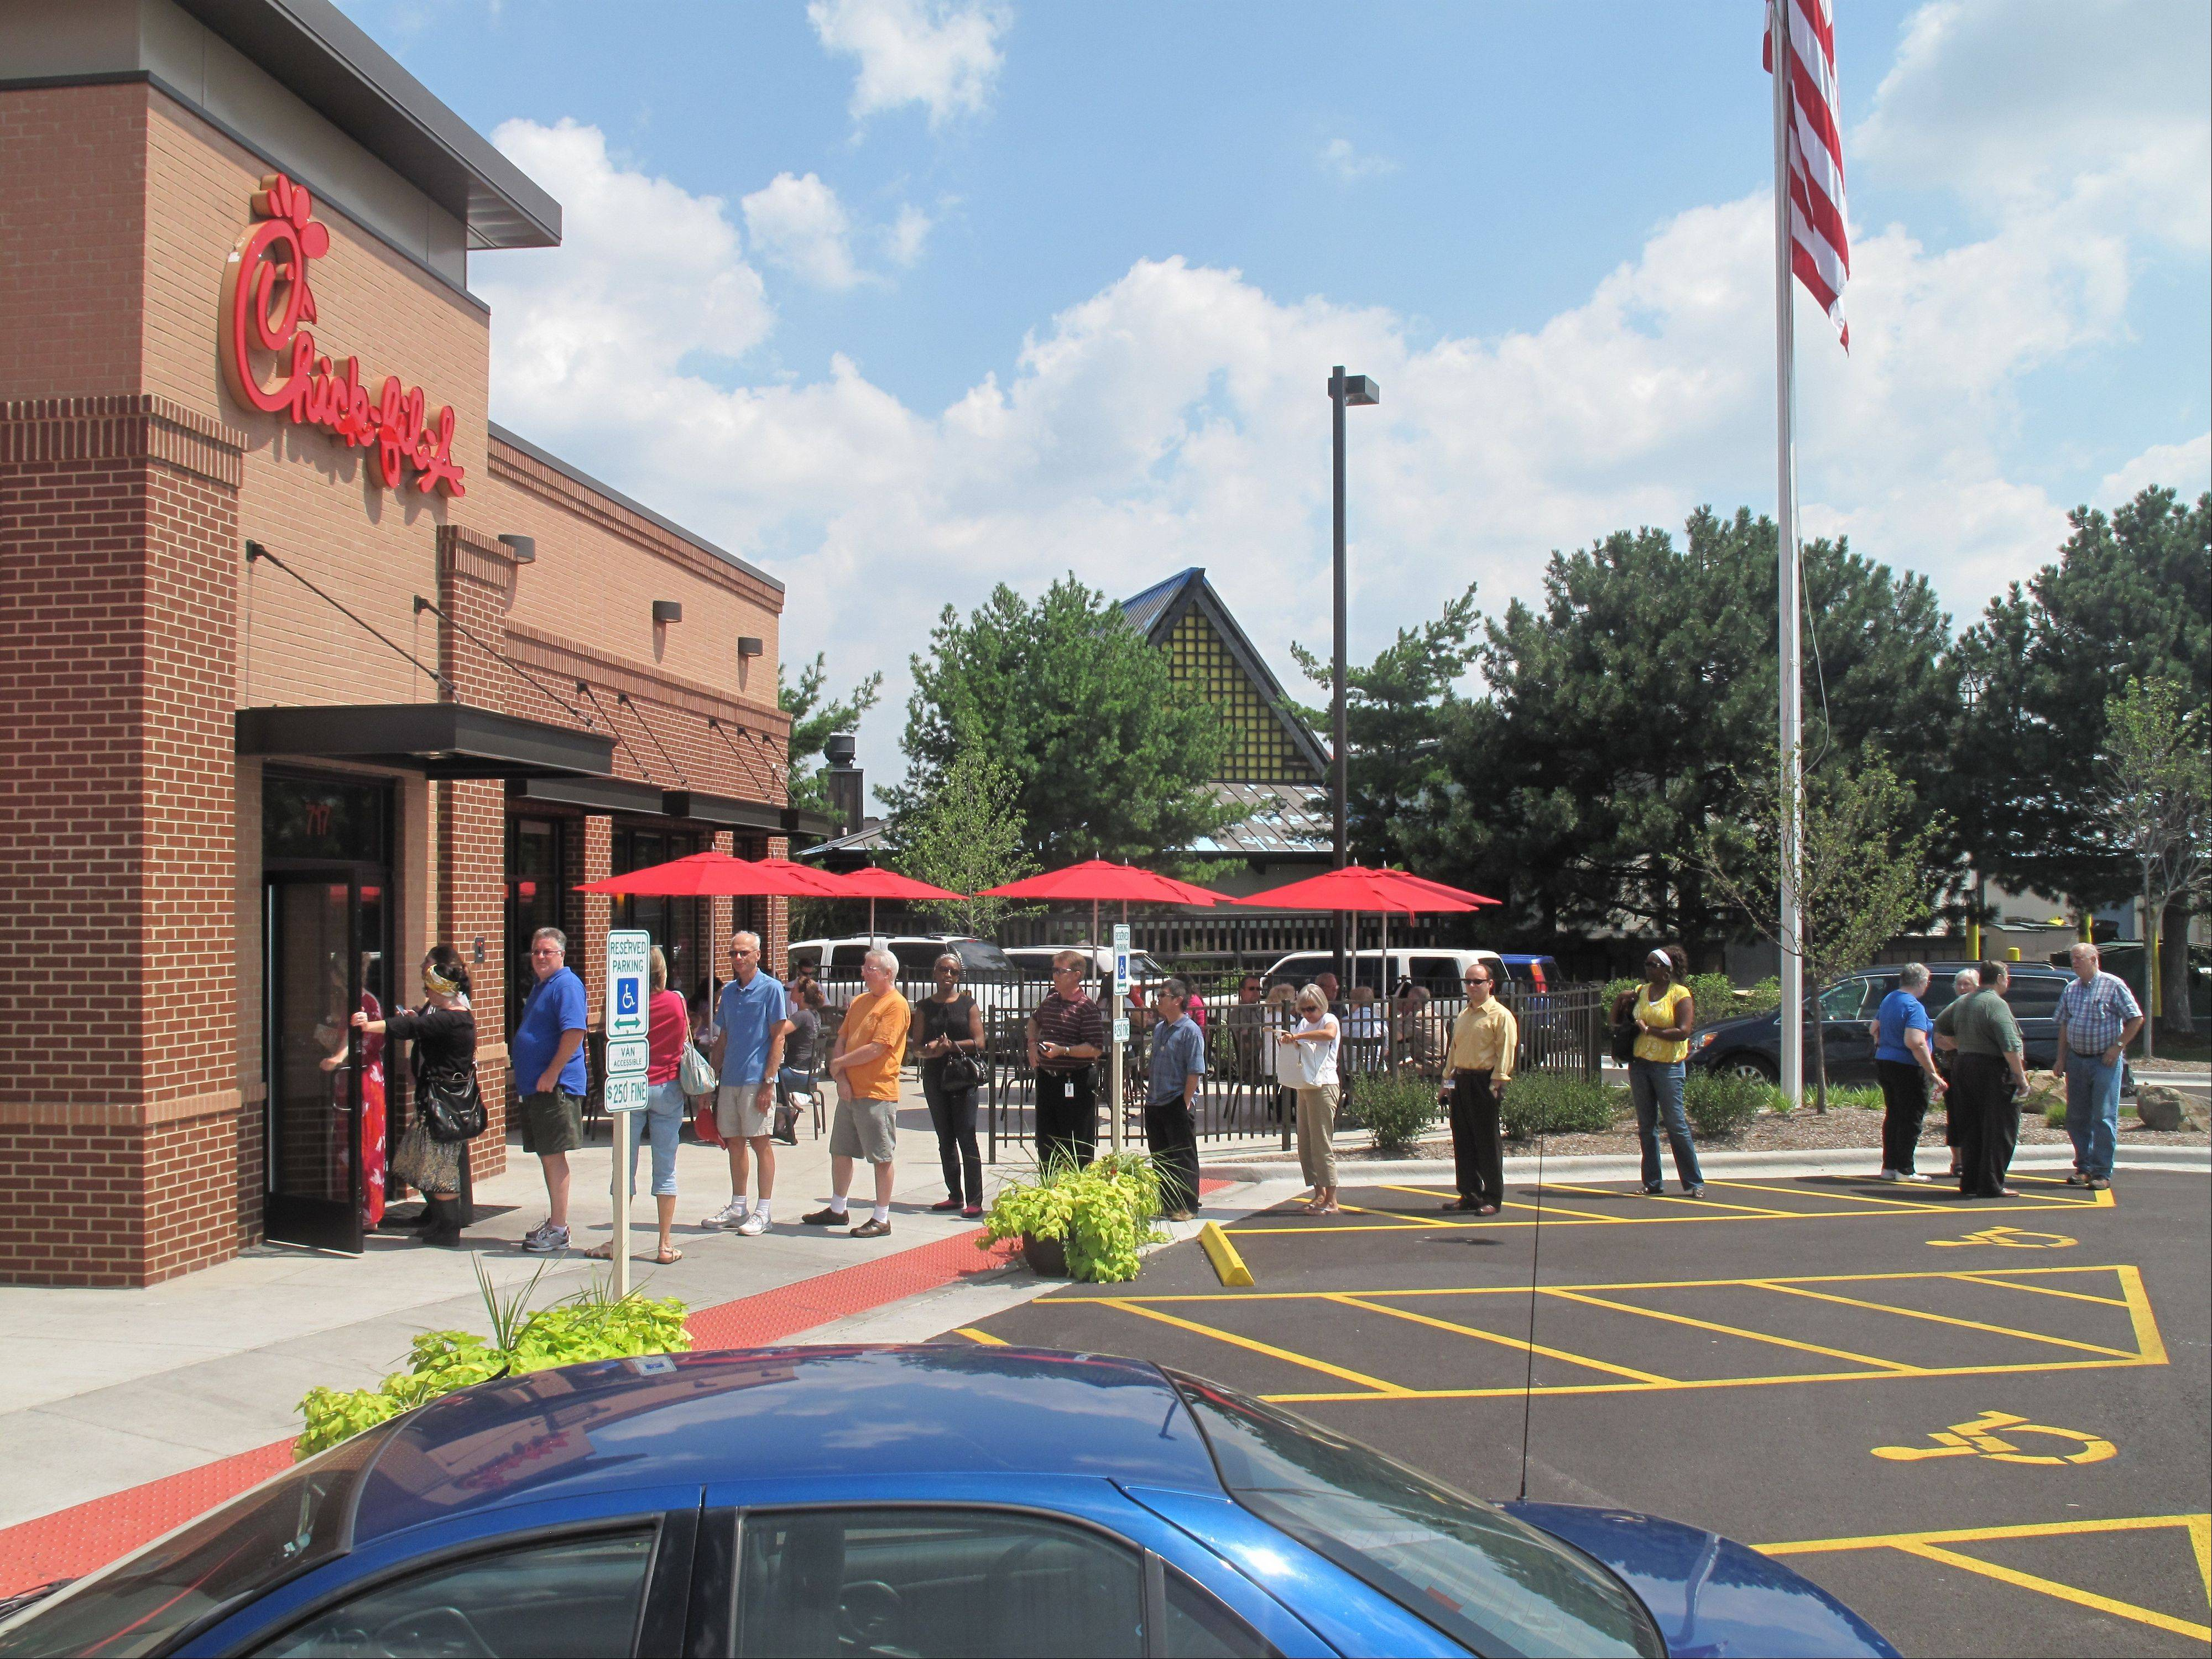 This crowd lined up for Chick-fil-A's grand opening in Lombard in March. The company wants to open its second Lake County store in Gurnee.